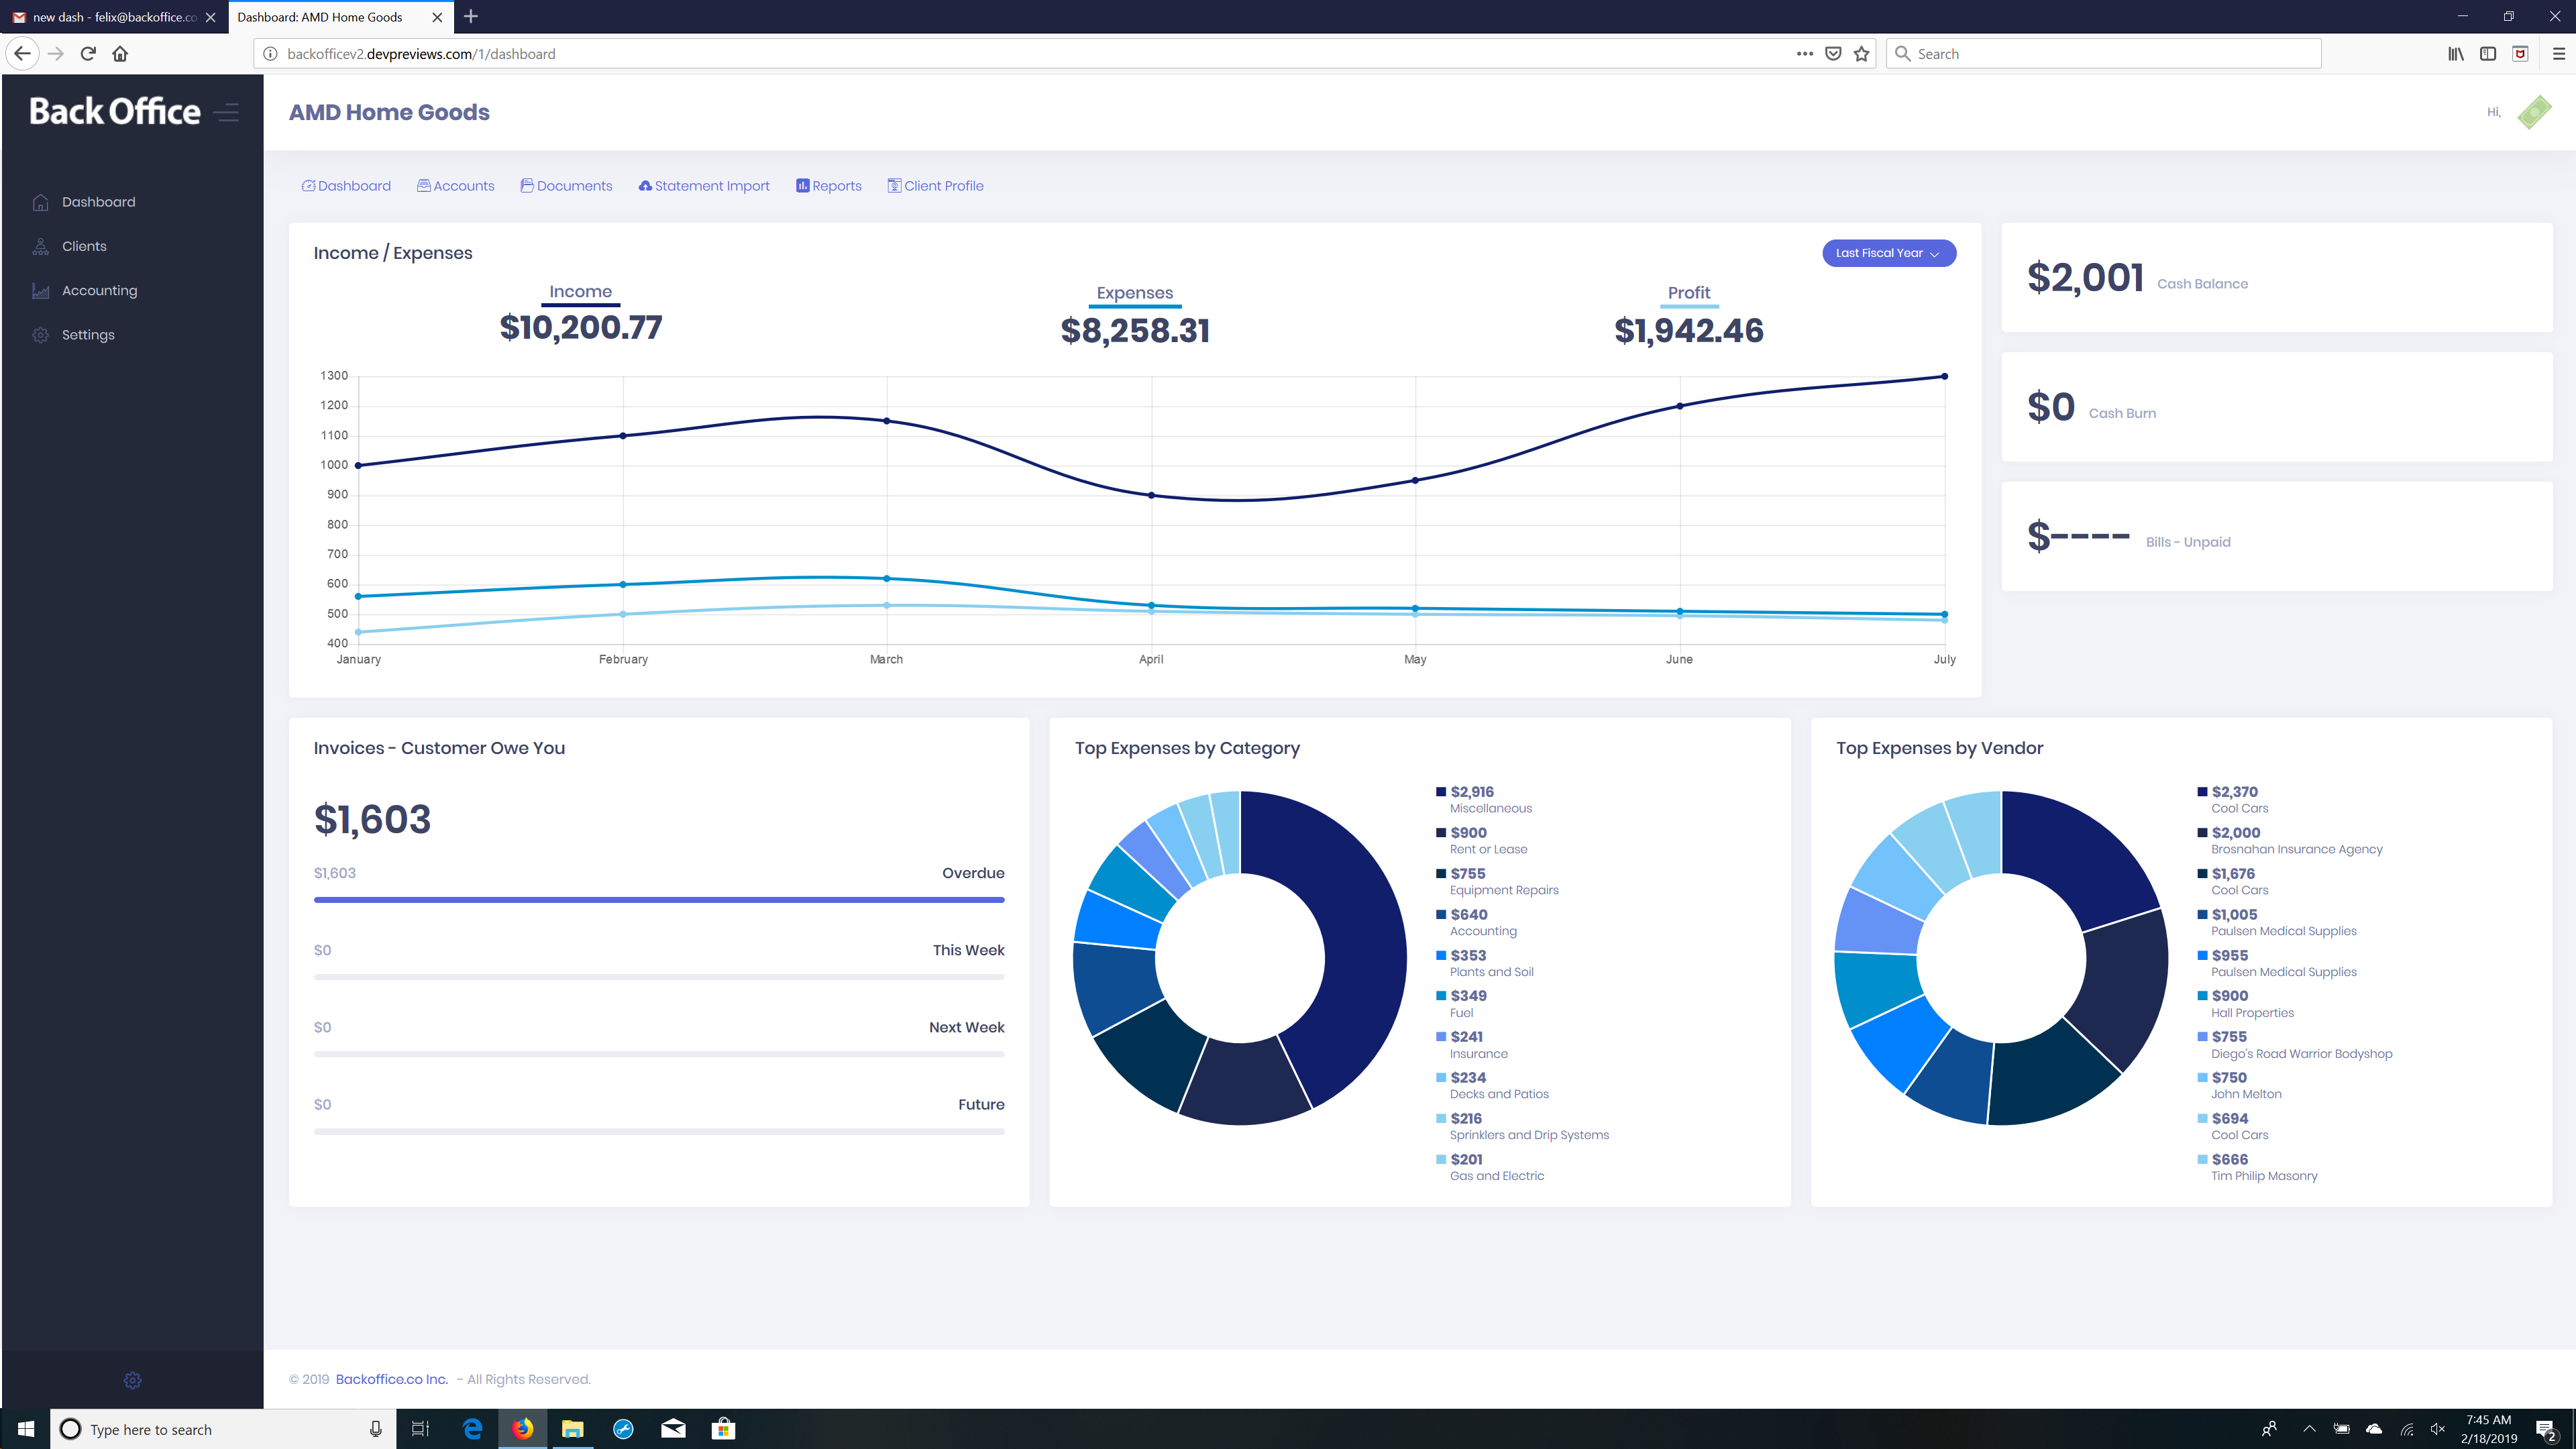 Back Office AI platform has a dashboard that provides current financial totals for a business. Courtesy image.